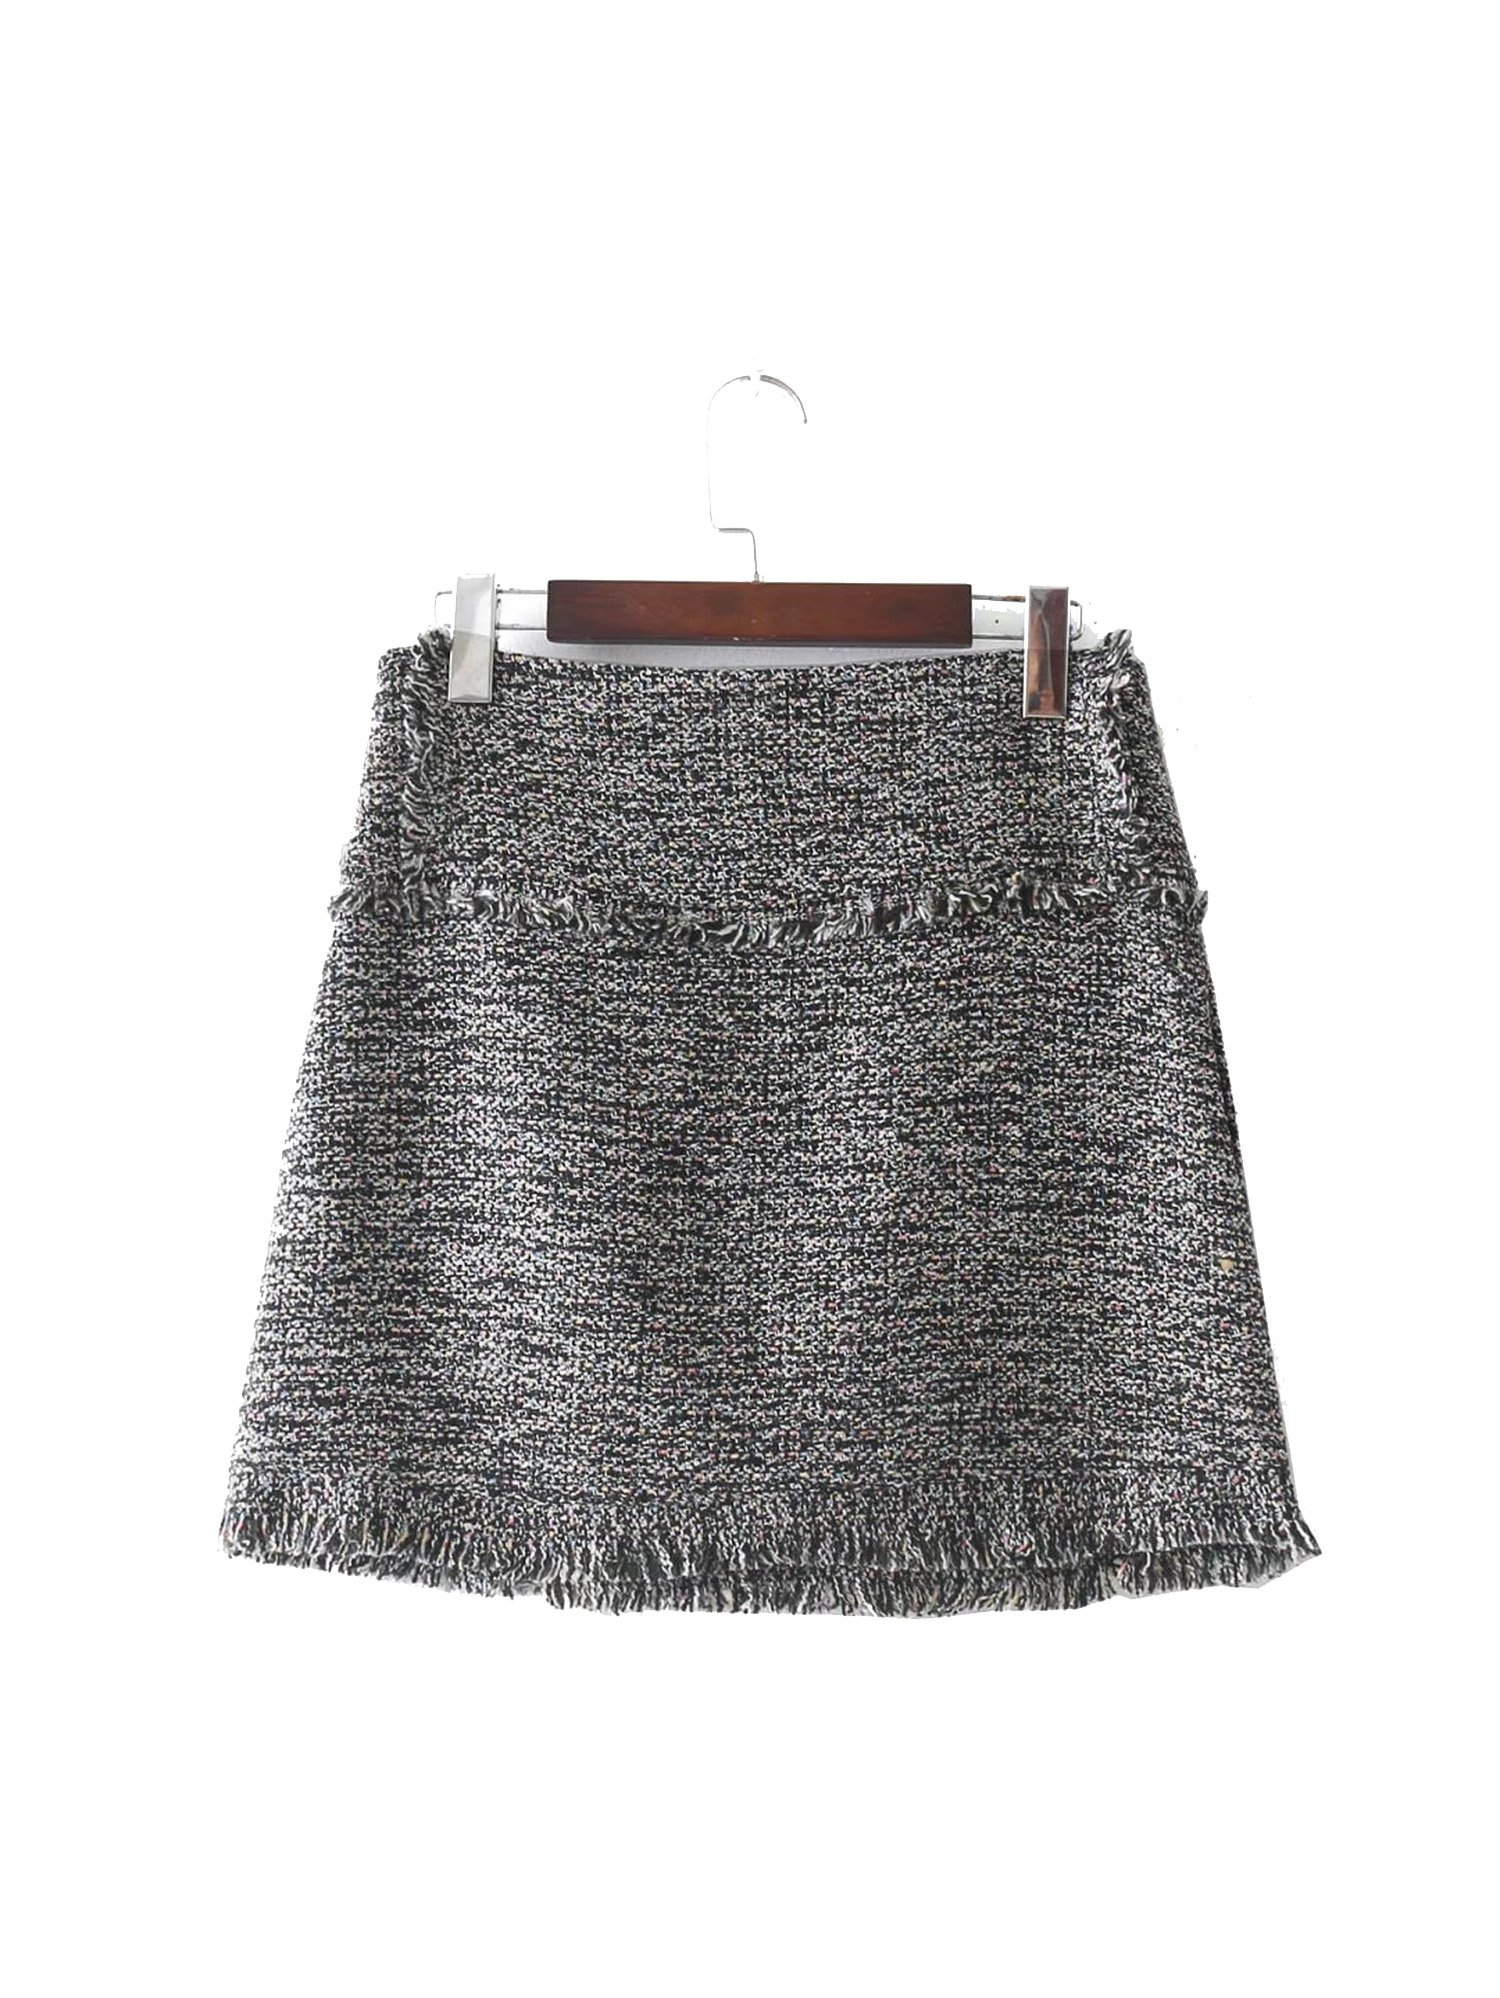 Lokouo 2018 Autumn and Winter New Style Jewelry Inlay Tweed Skirt,L